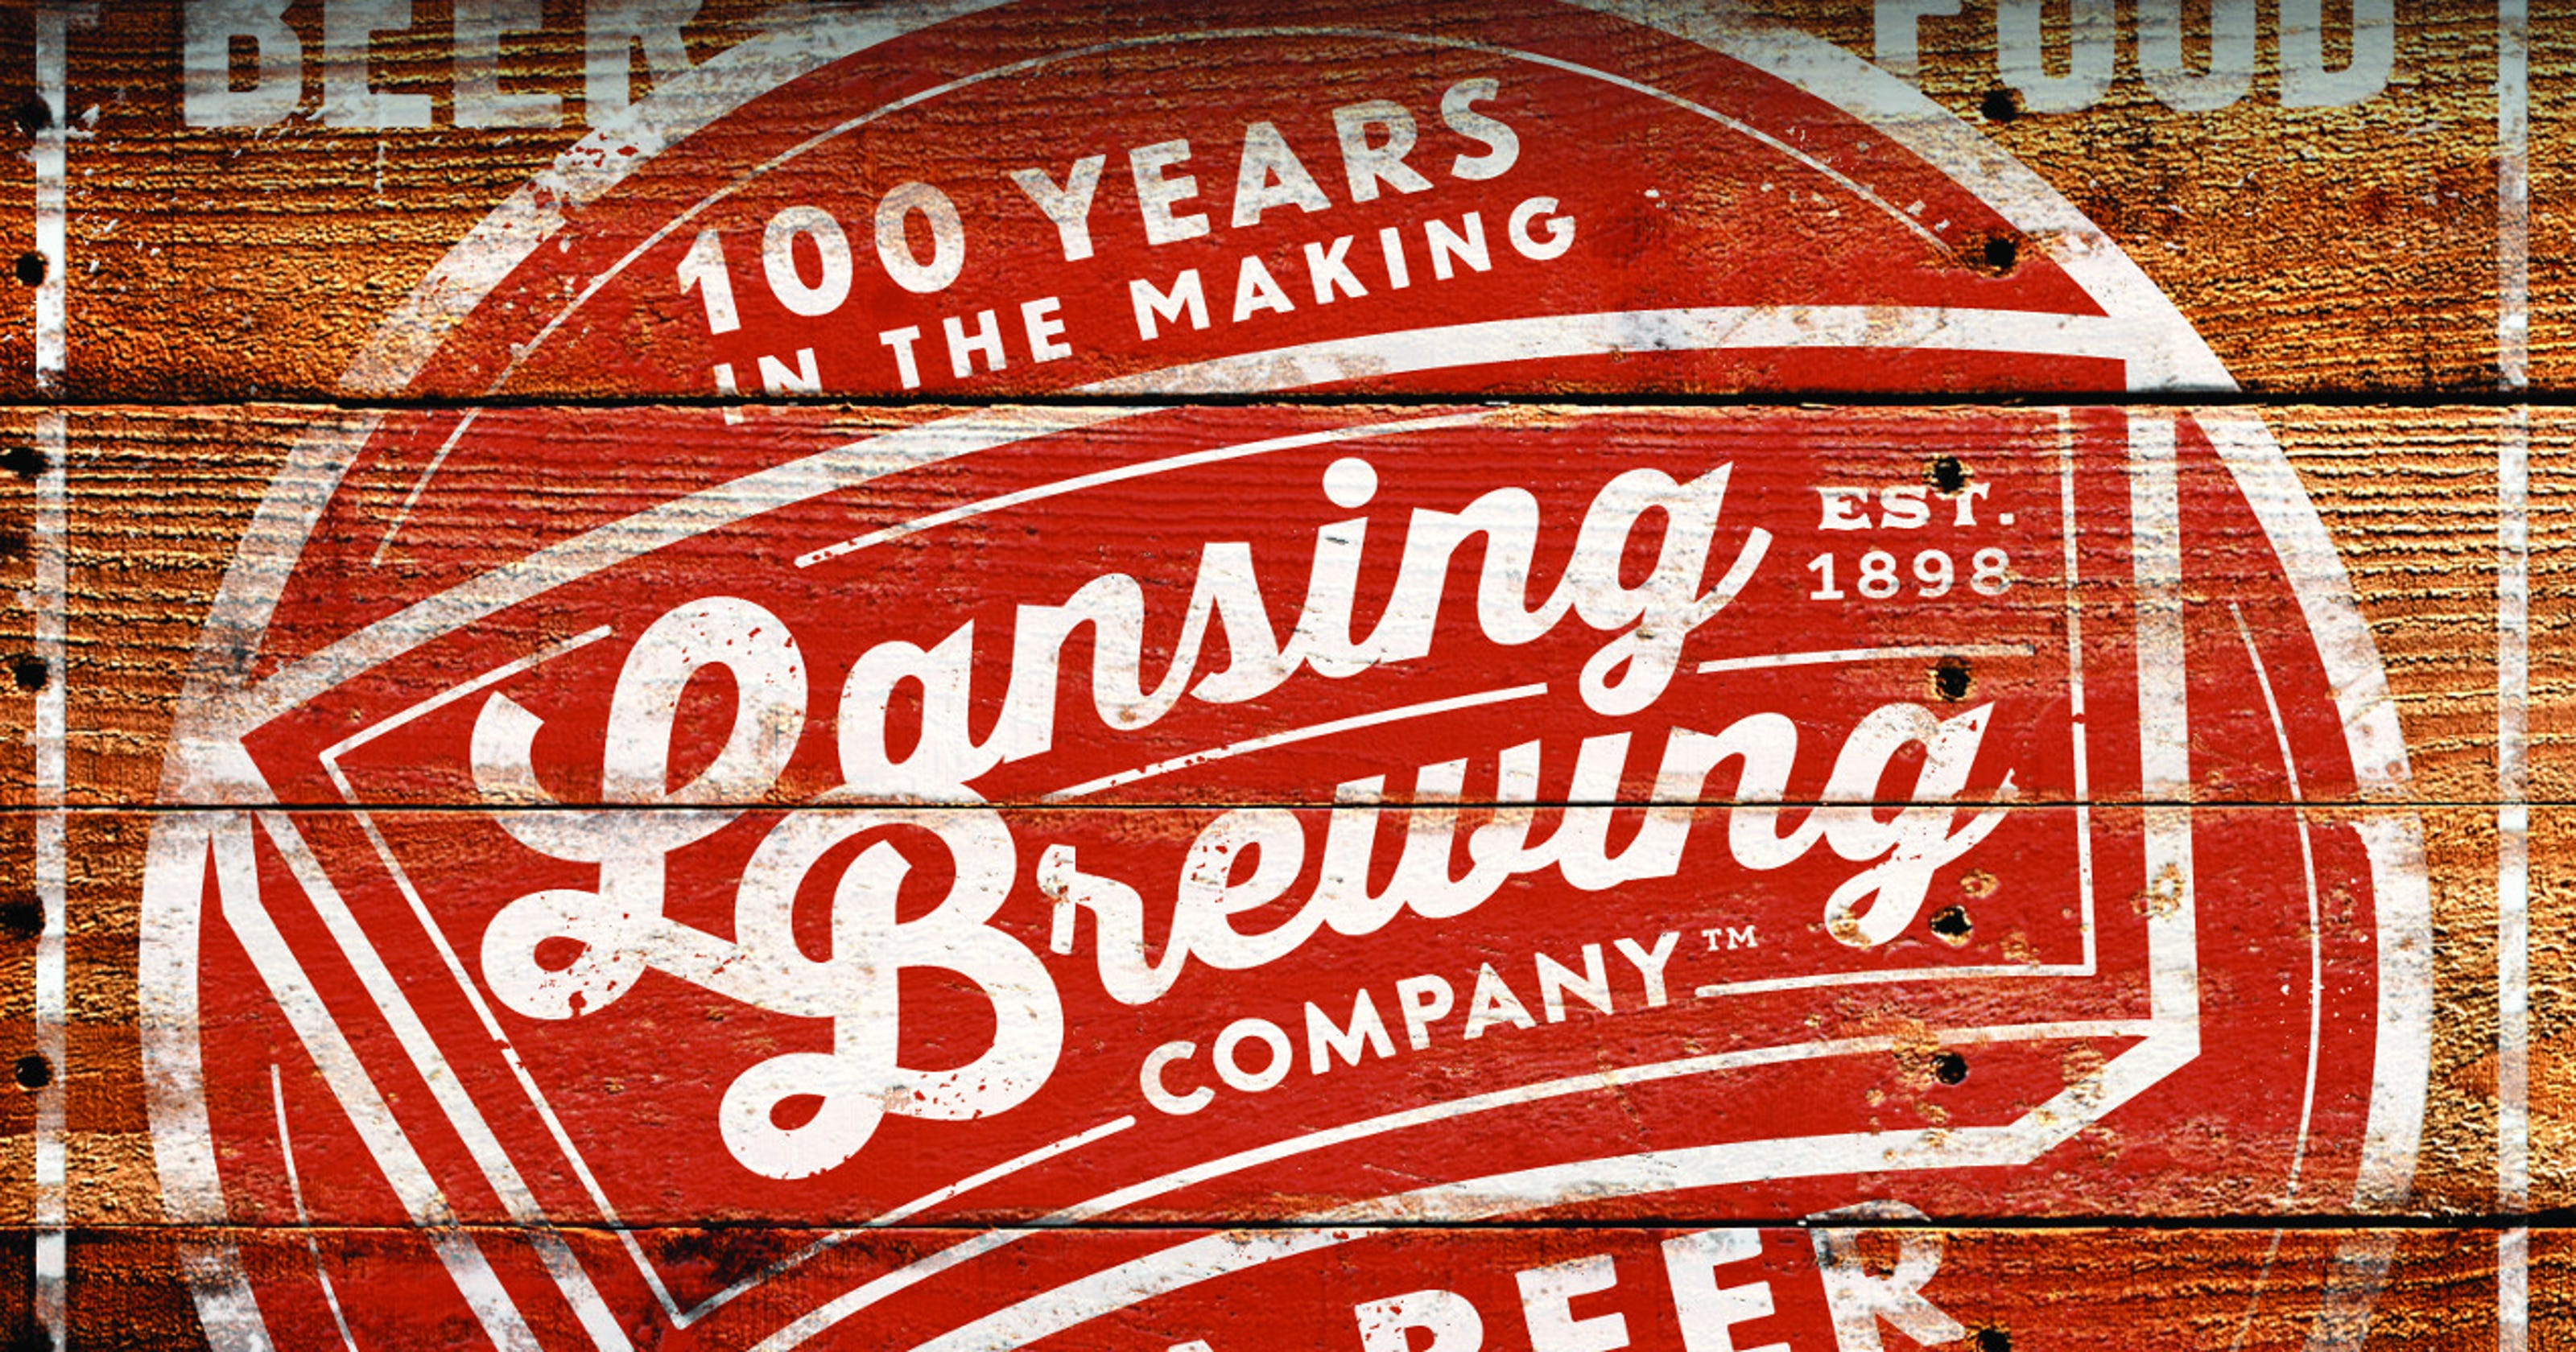 2015 : Lansing Brewing Company Reopens After More Than 100 Years